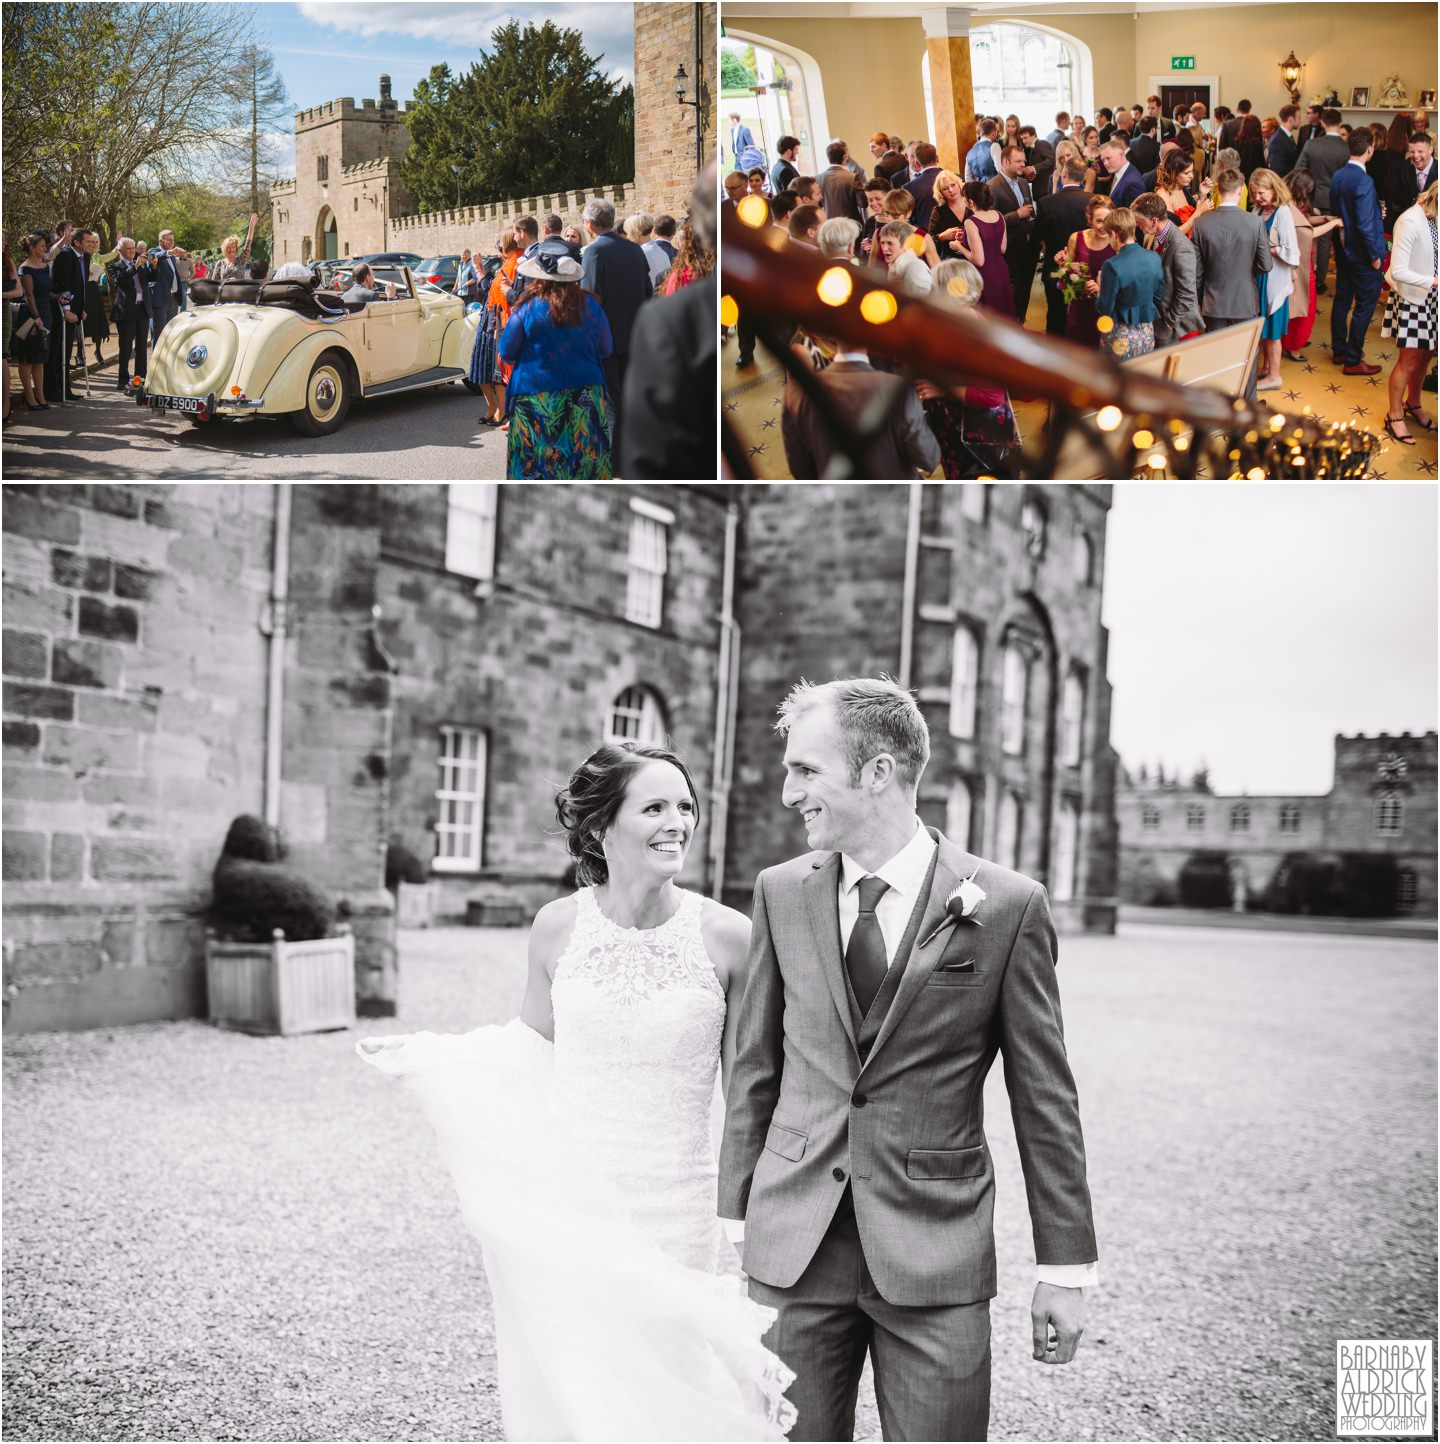 Ripley Castle wedding reception photos